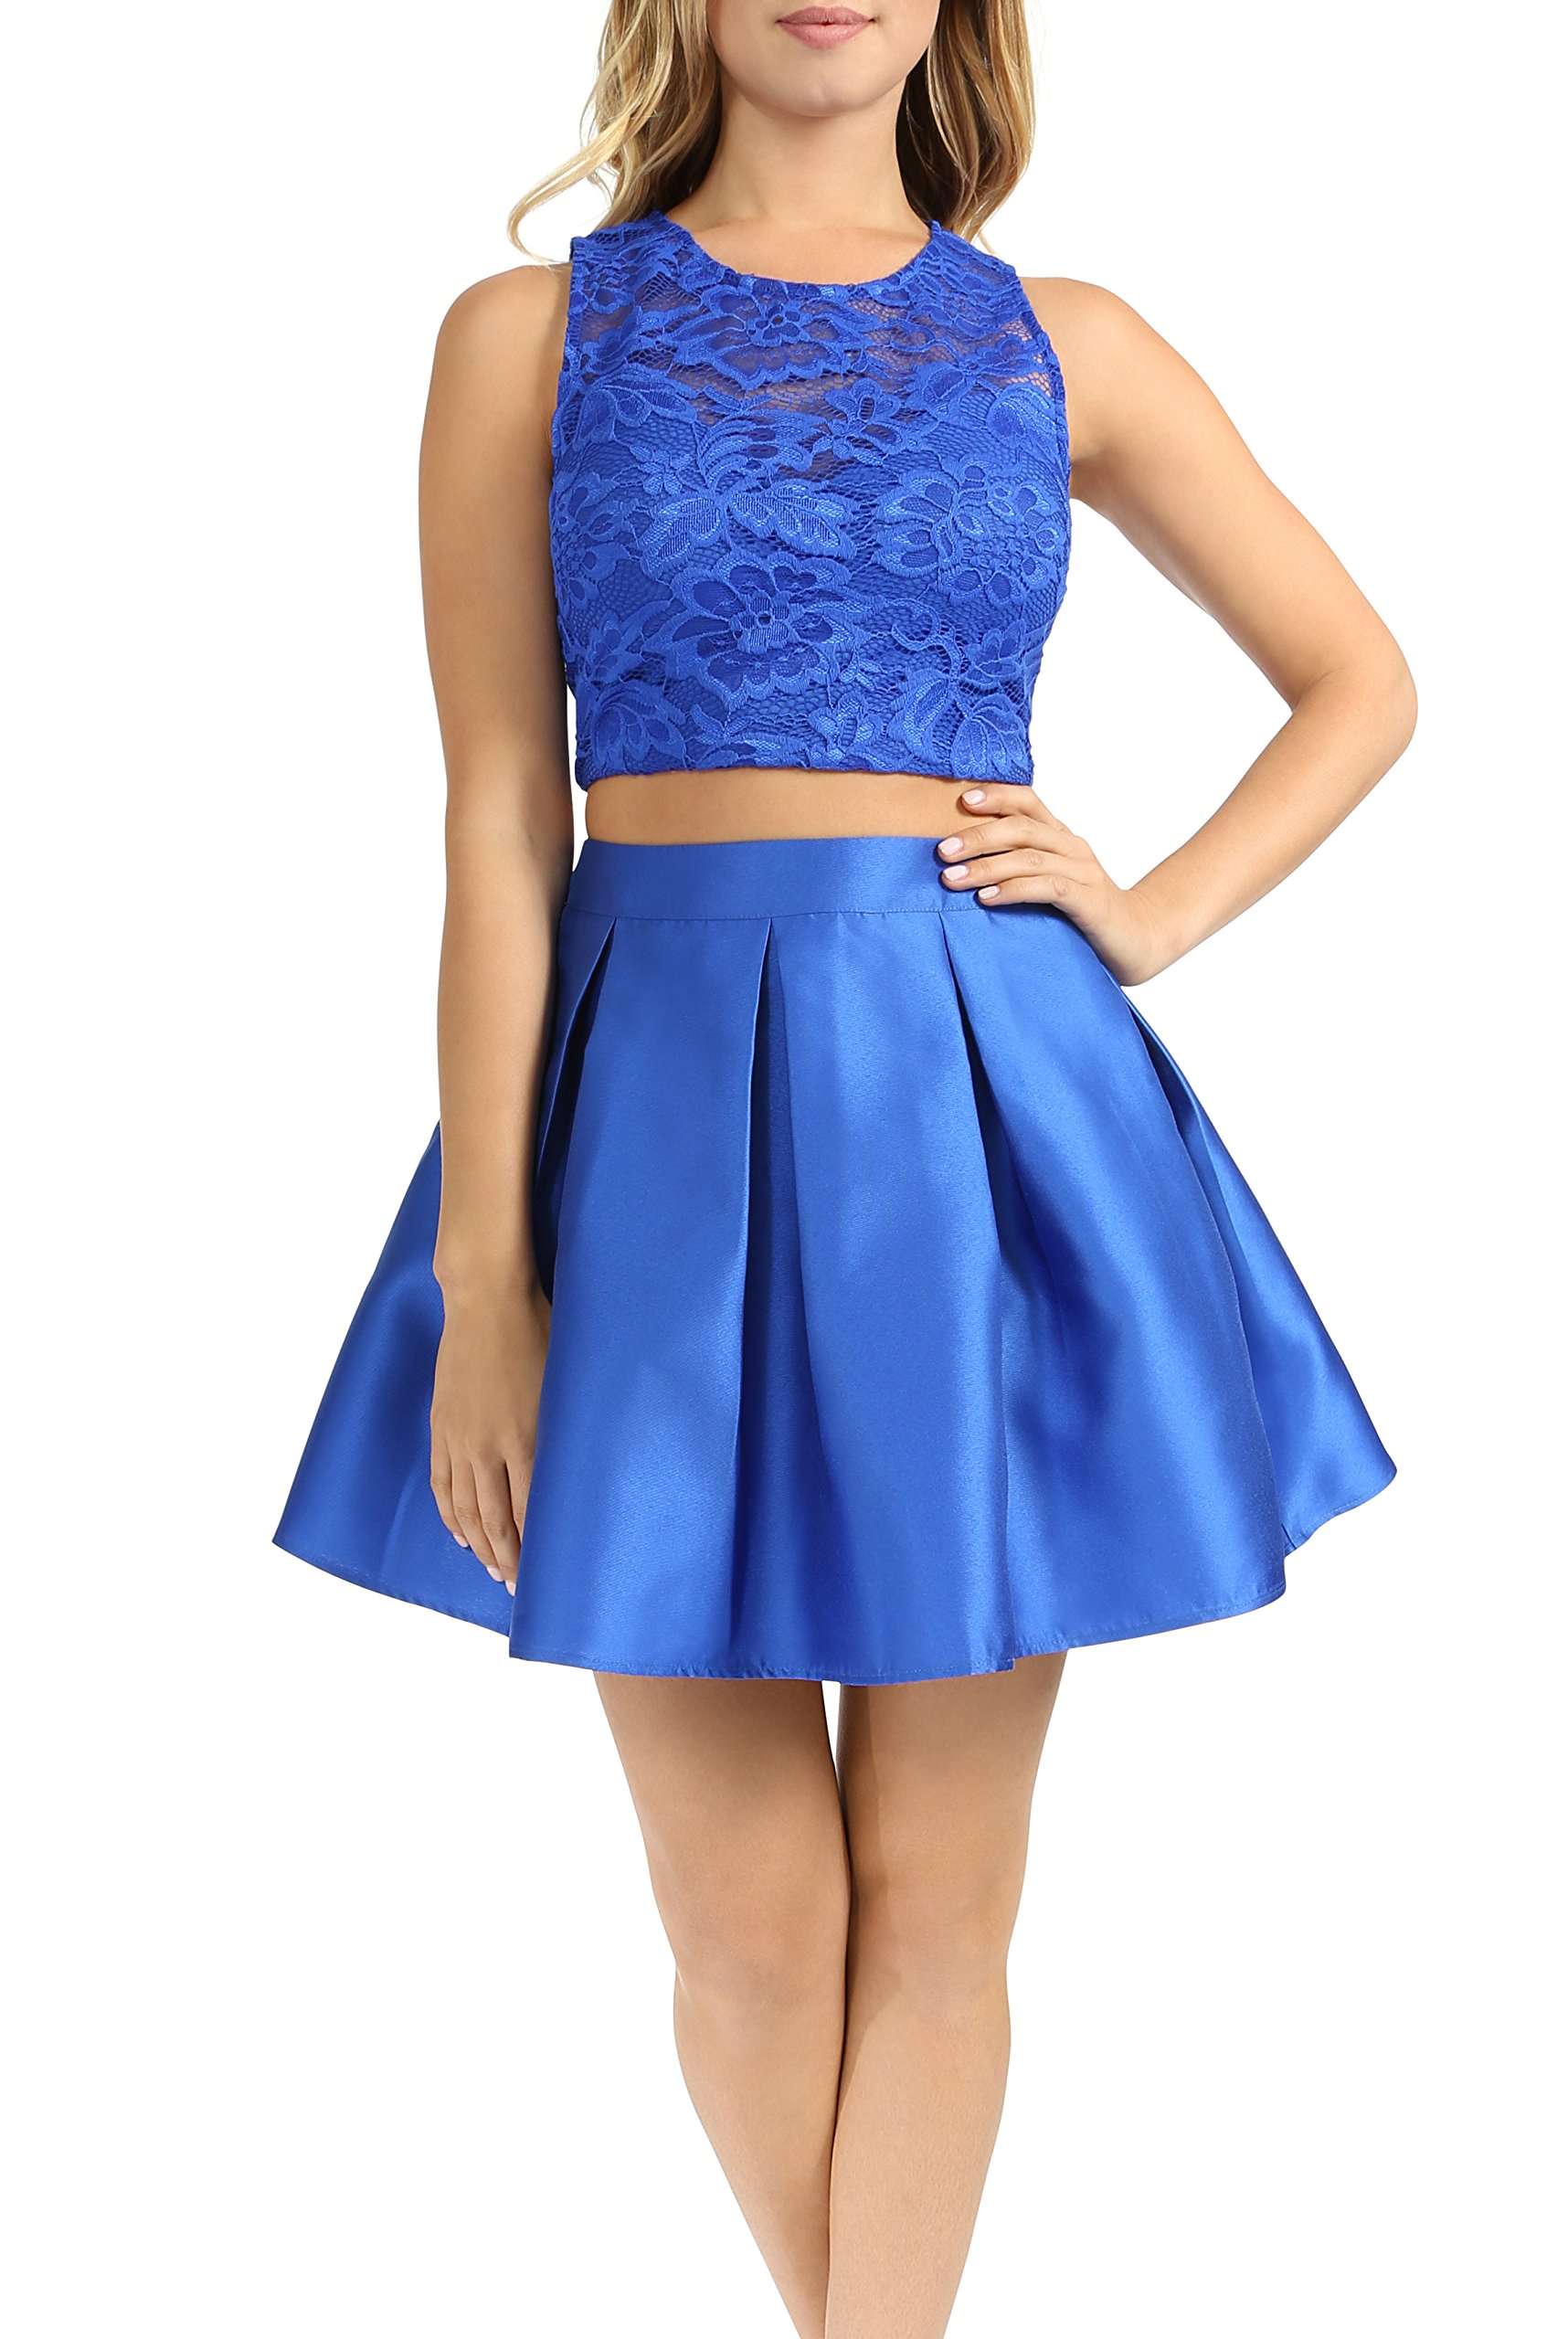 Teeze Me Juniors Sleeveless Two-Piece Floral Lace Crop Top Party Dress